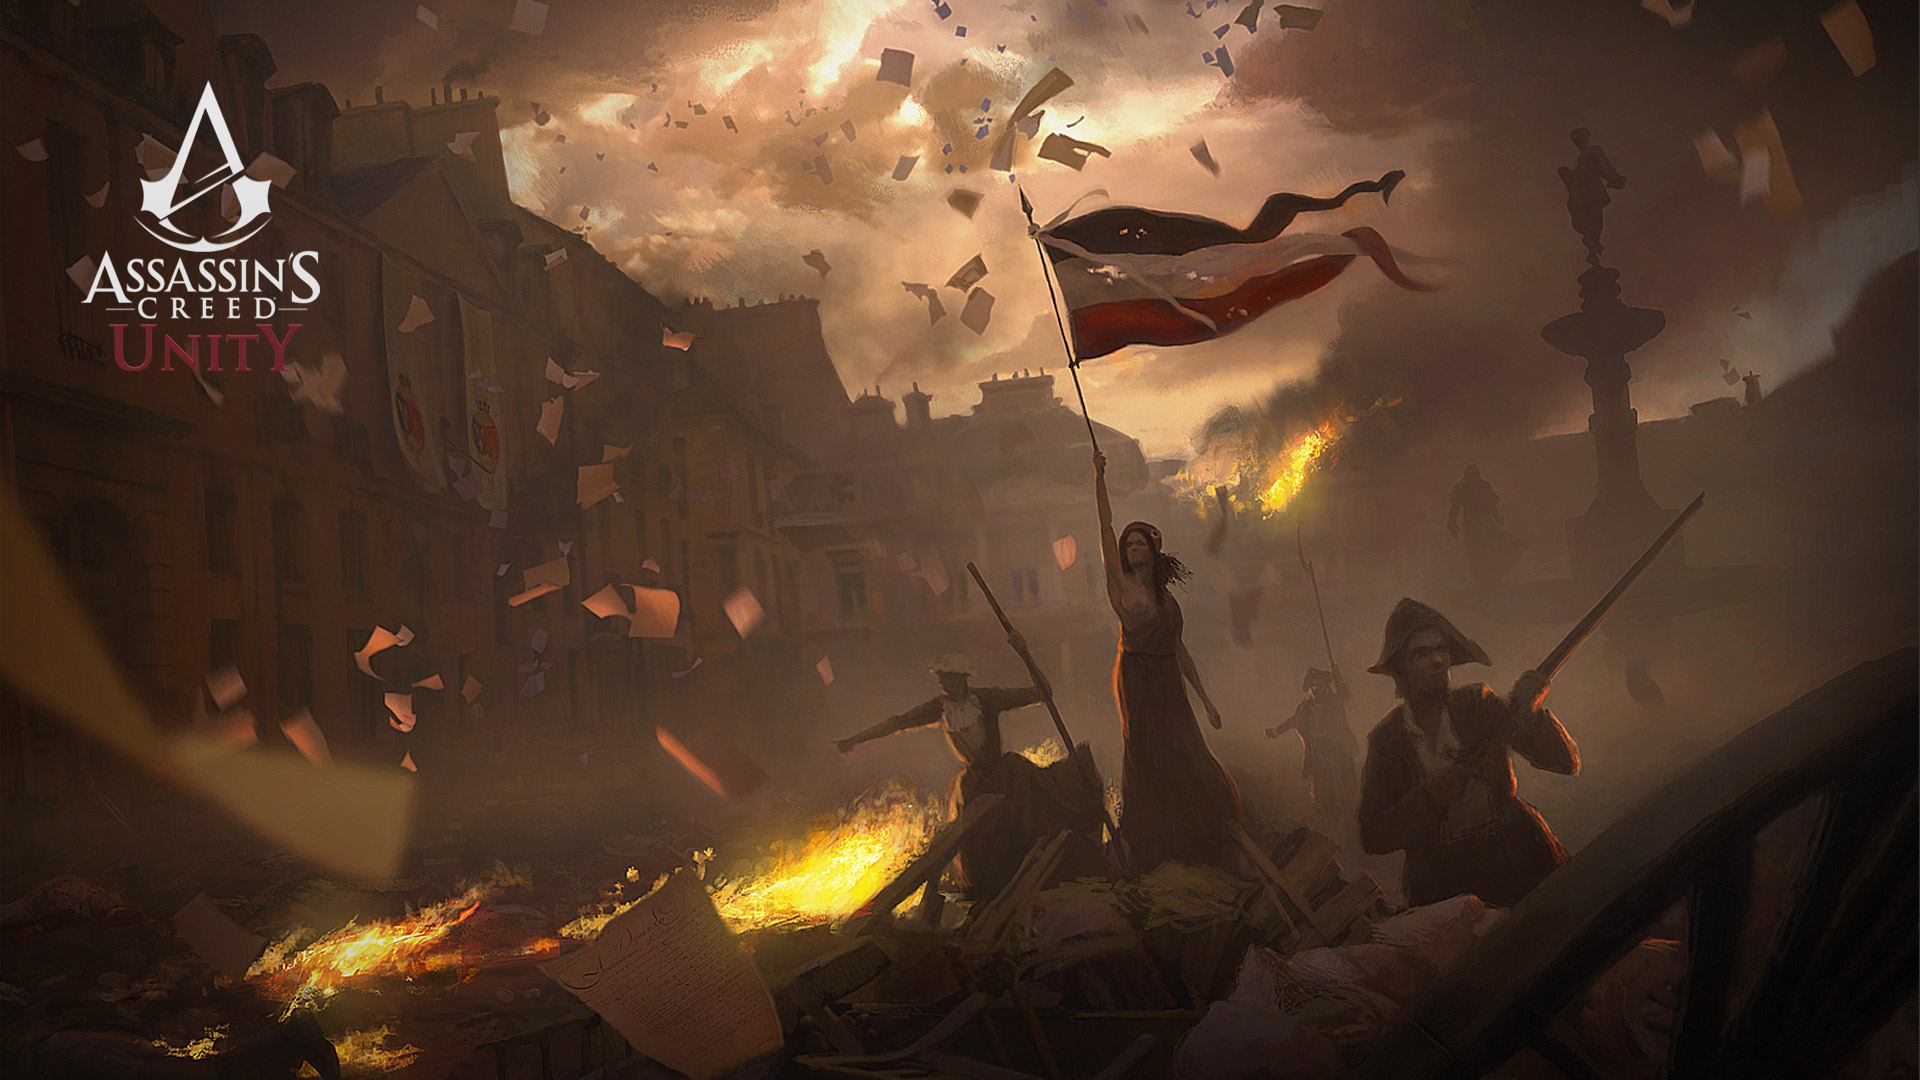 Assassin's Creed: Unity Wallpaper in 1920x1080